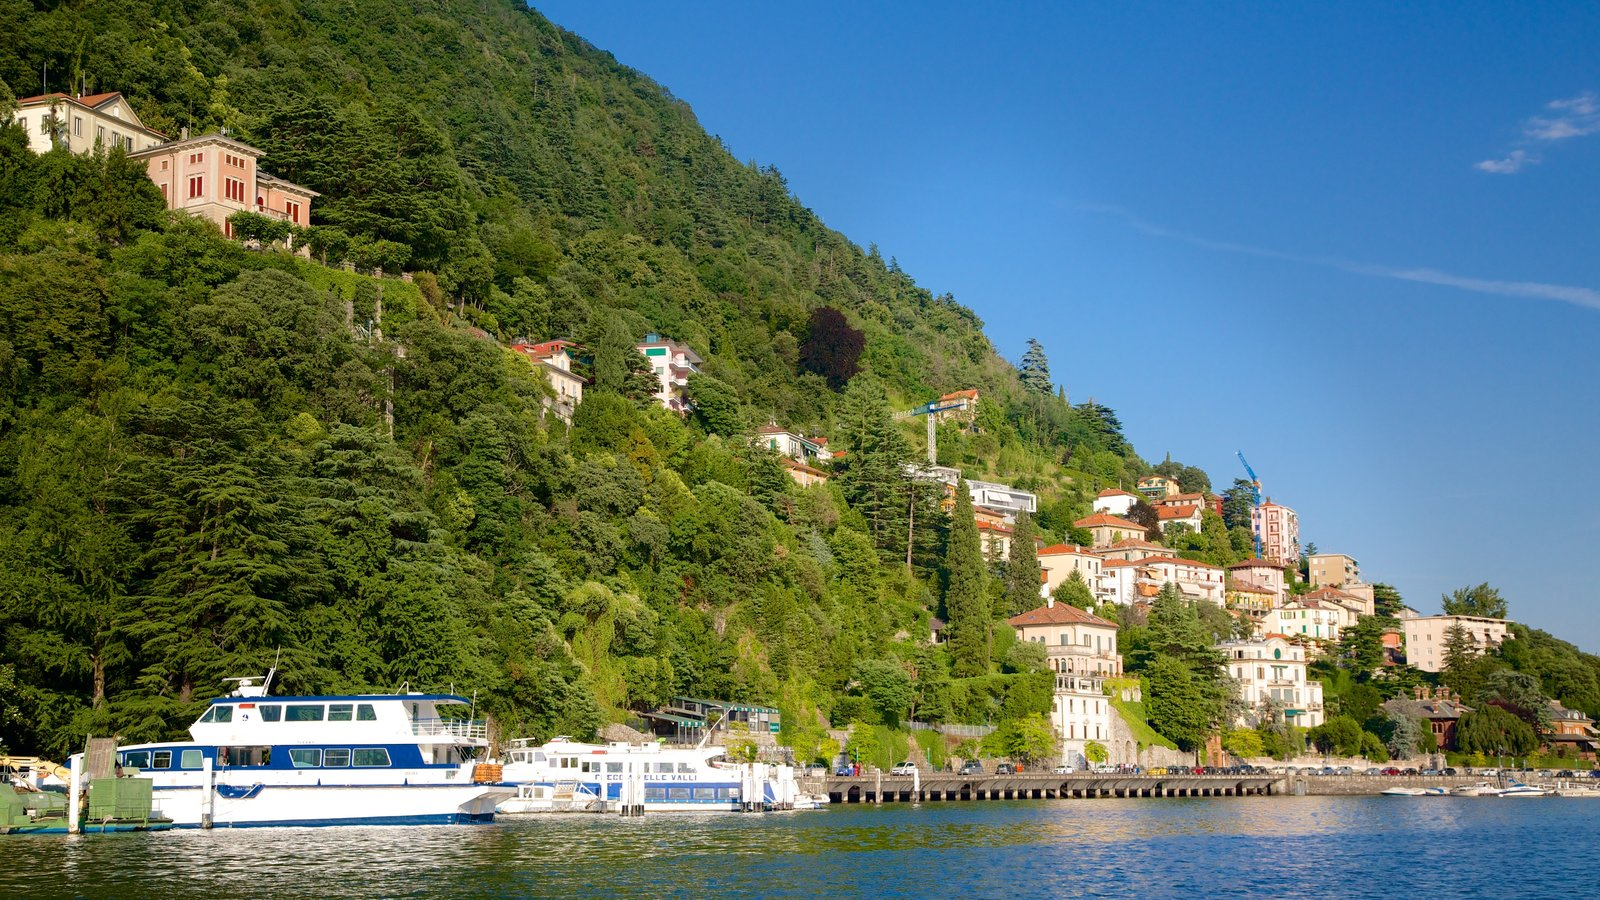 Como showing a bay or harbor, boating and a coastal town